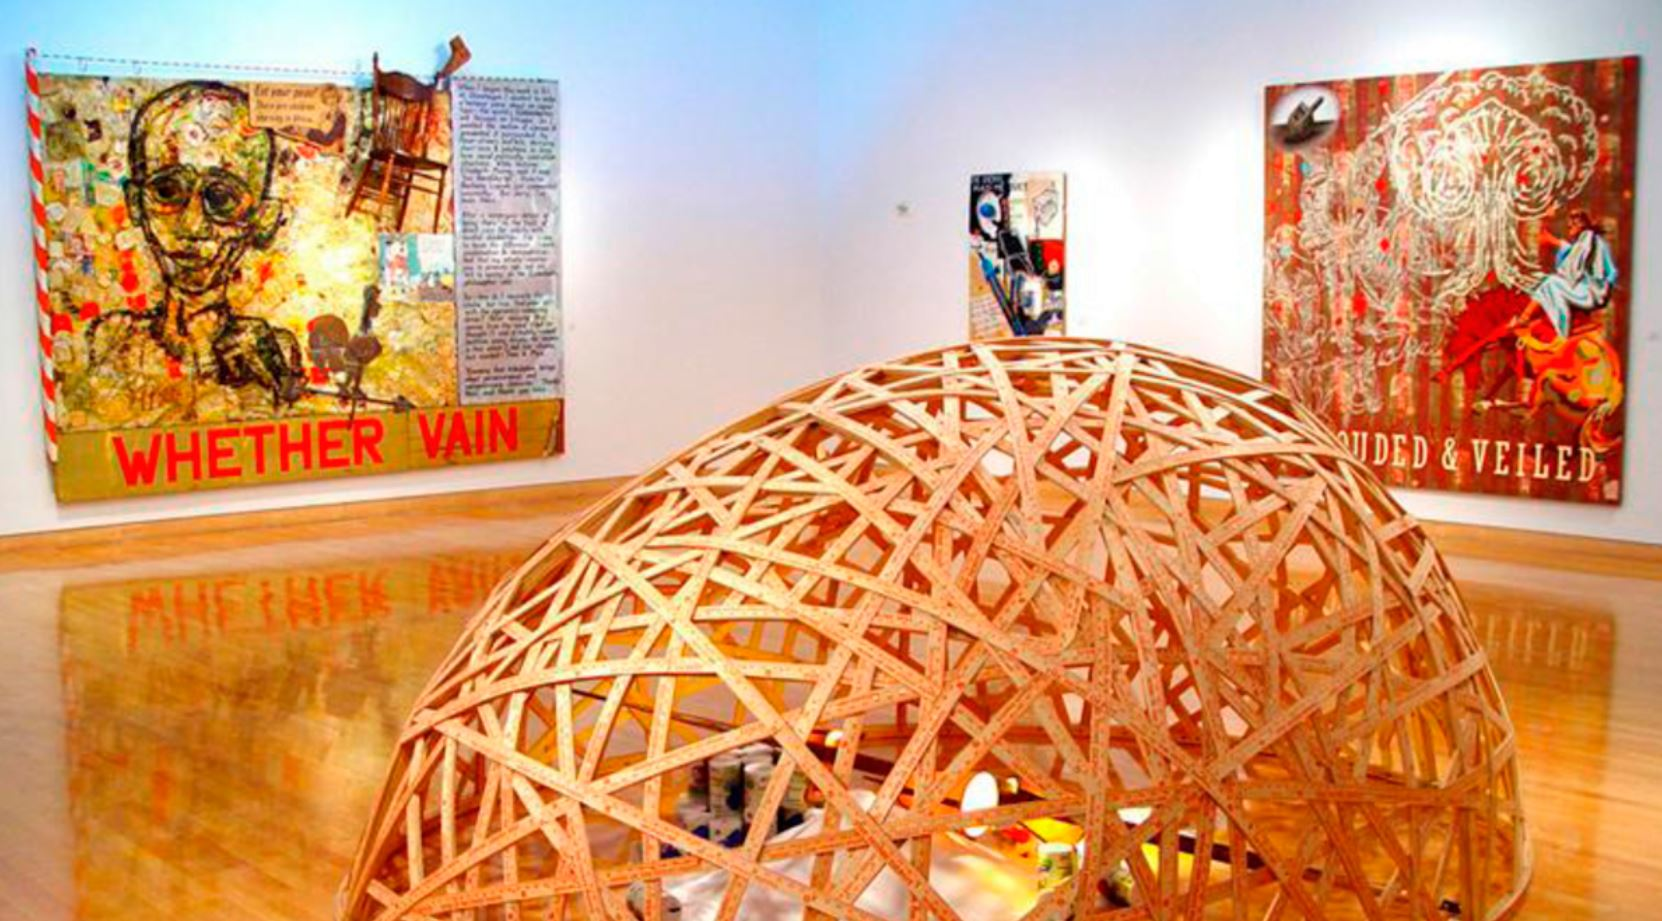 Jerry E. Smith, Covered & Smothered: 3000 feet wood lathe, 300 Home Depot yardsticks, 50 lbs. salt and vintage pole lamp, 11X12X5 ft., 2012